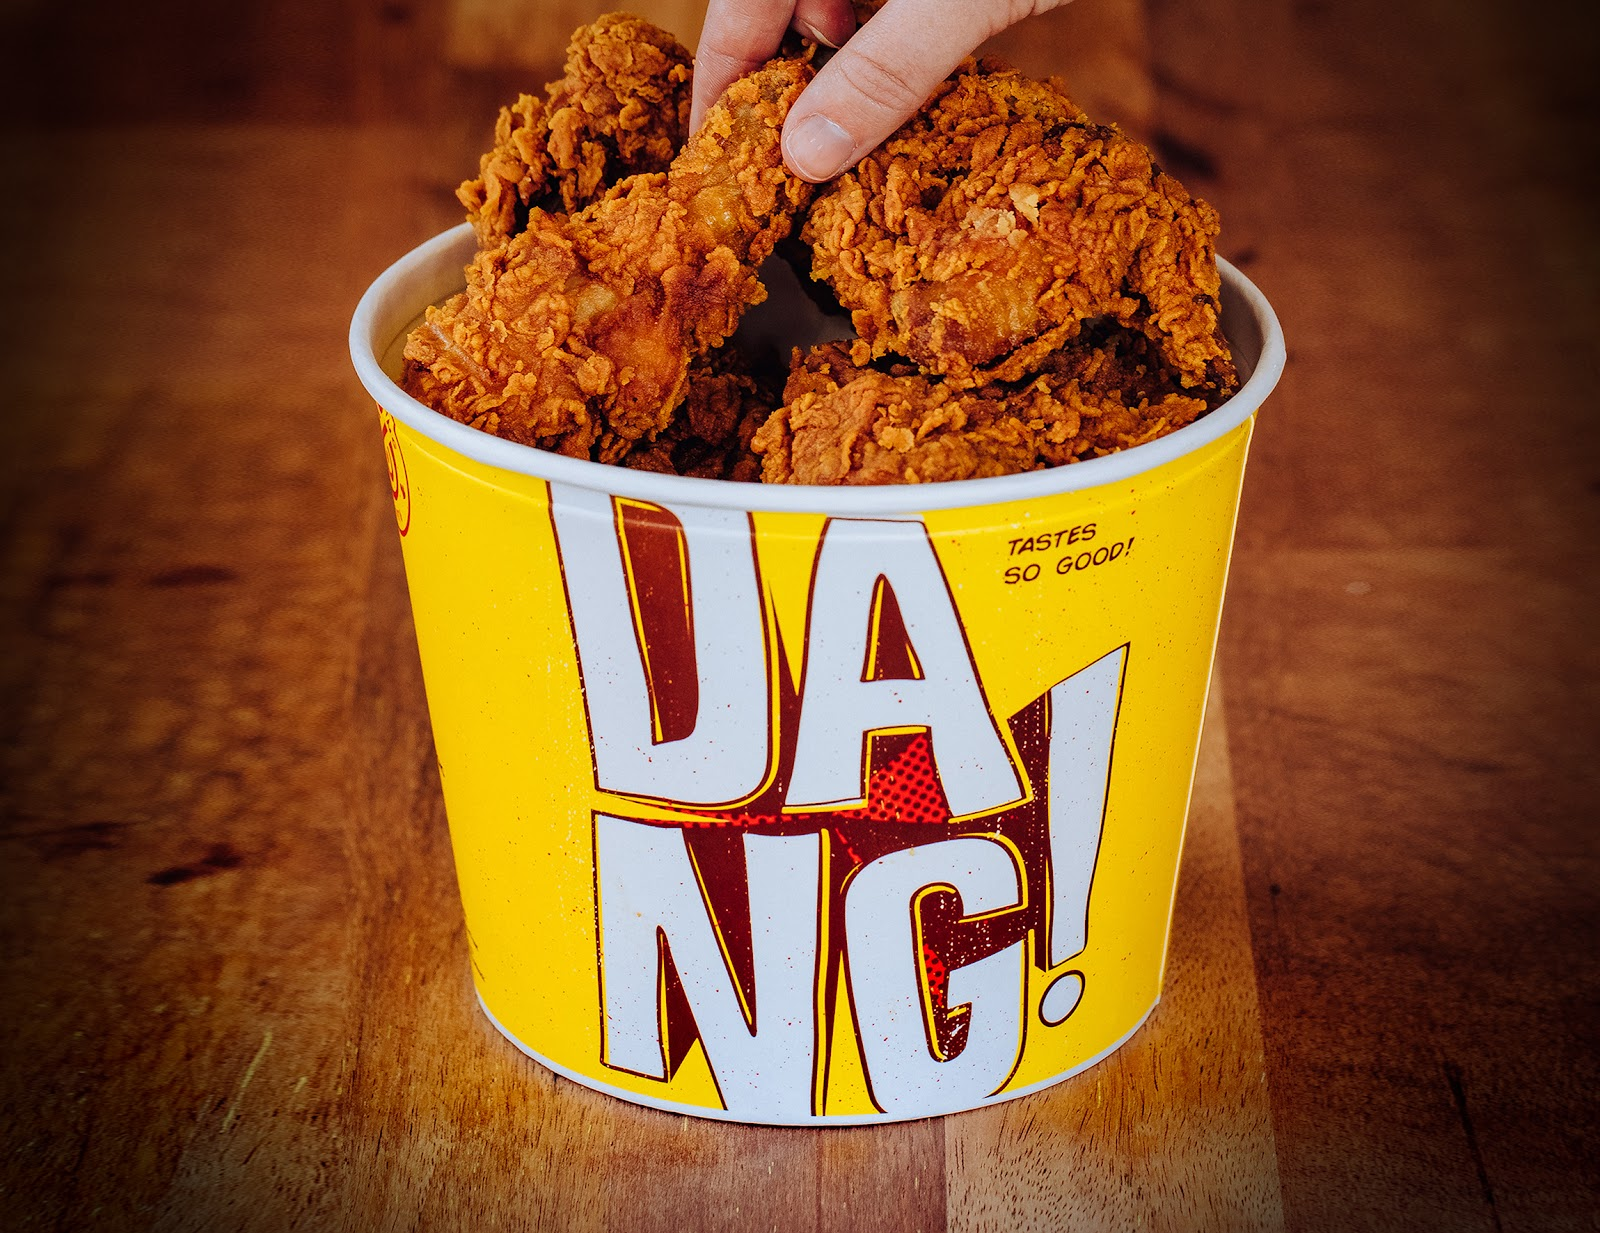 The Chicken Treat bucket packaging is designed in the brand's comic book style and features the word